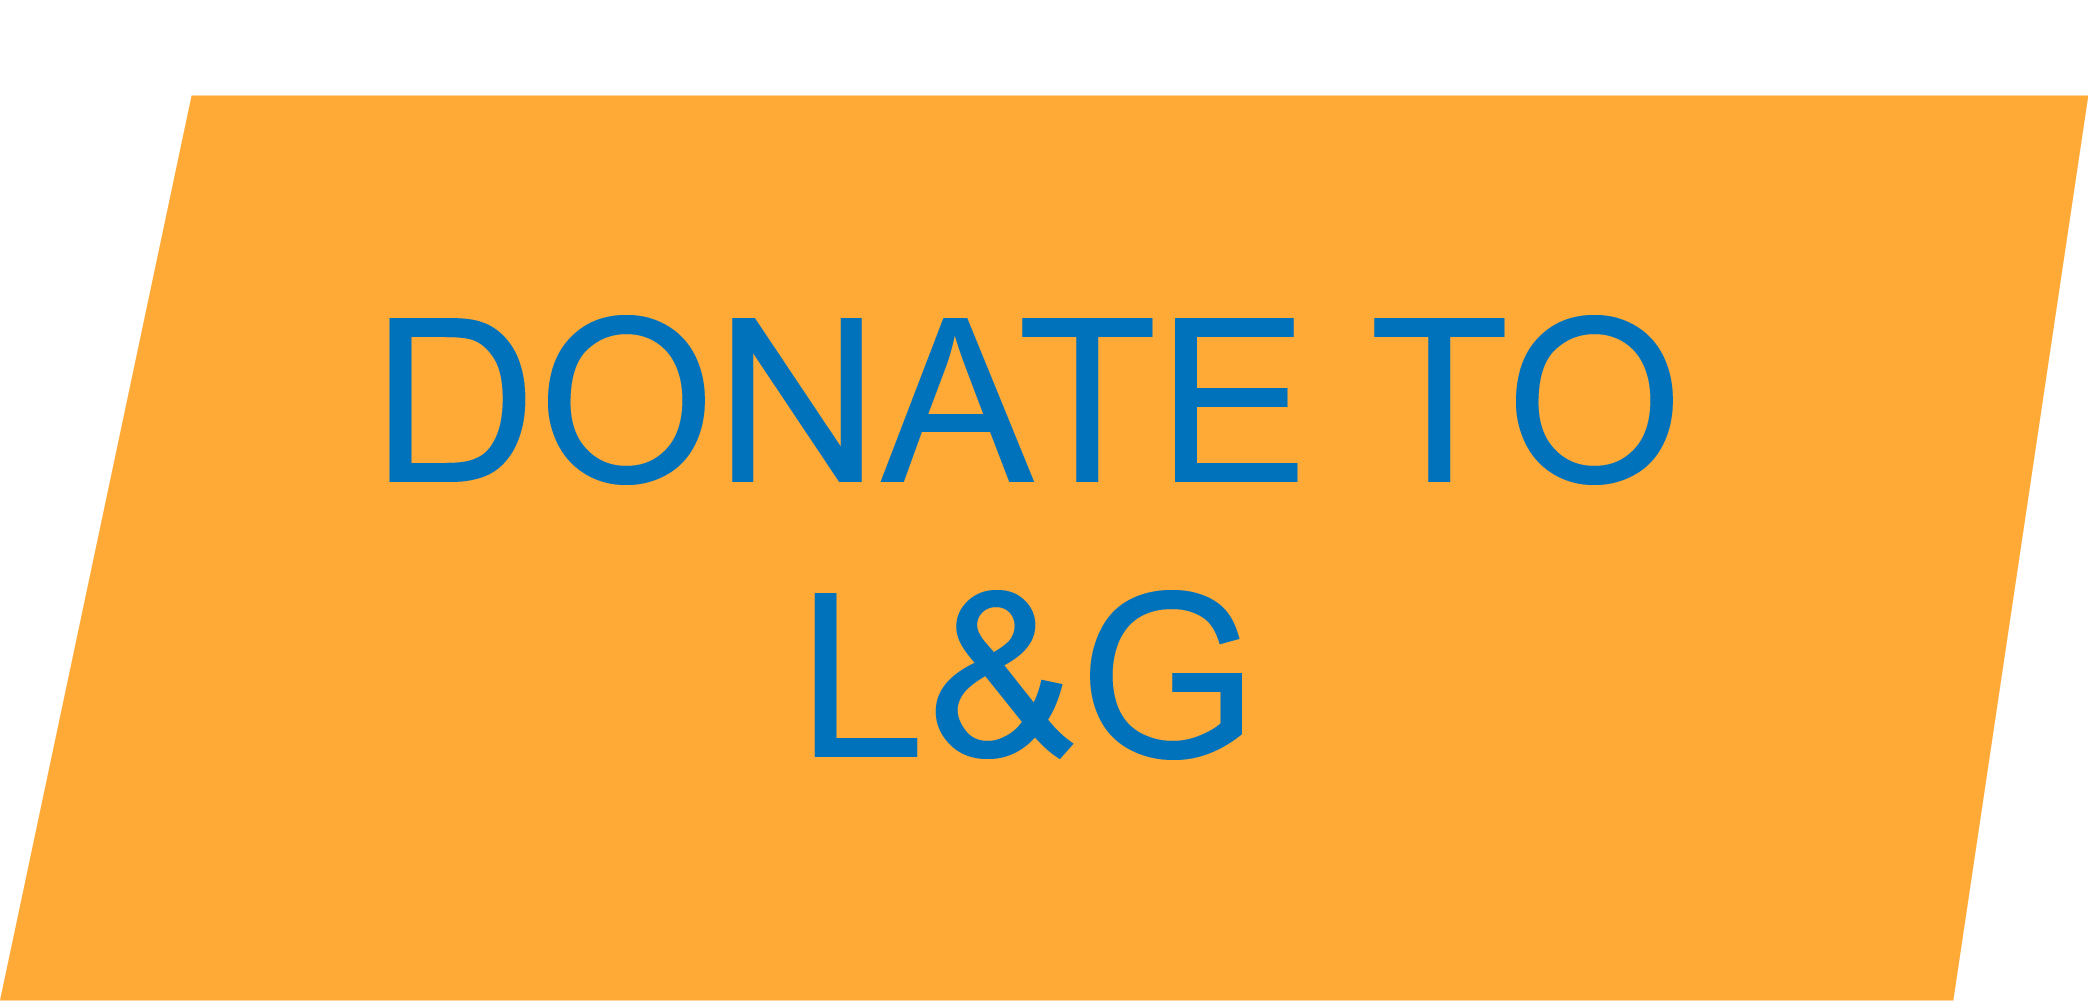 icon that reads Donate to L&G